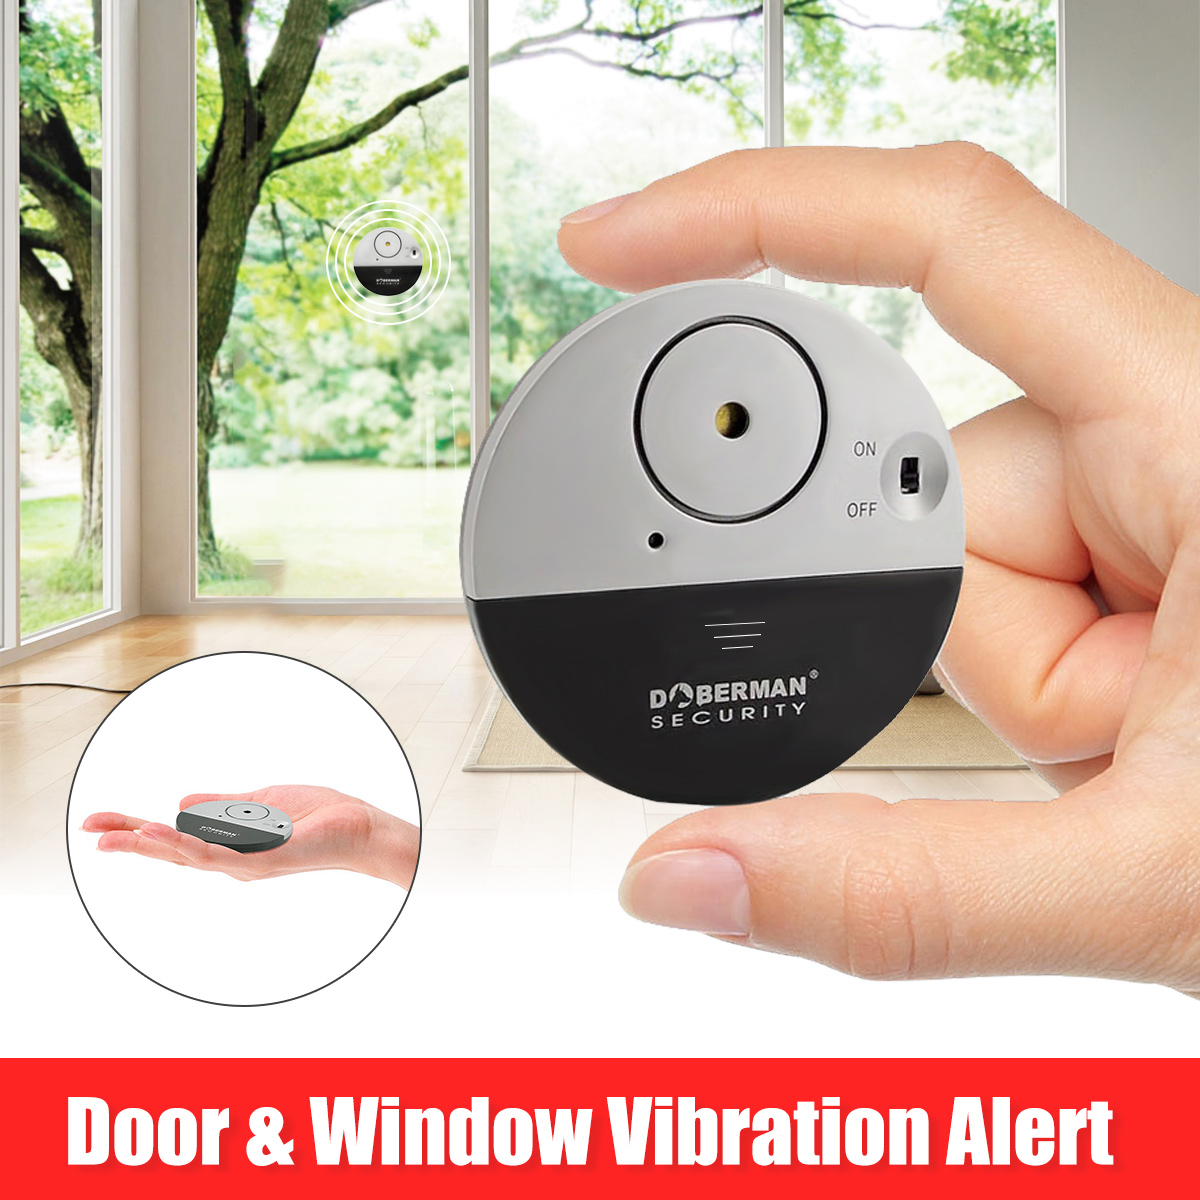 Grtsunsea DOBERMAN SECURITY Home Office Security Super-Slim Wireless Door Window Vibration Burglar Alarm Alert Sensor